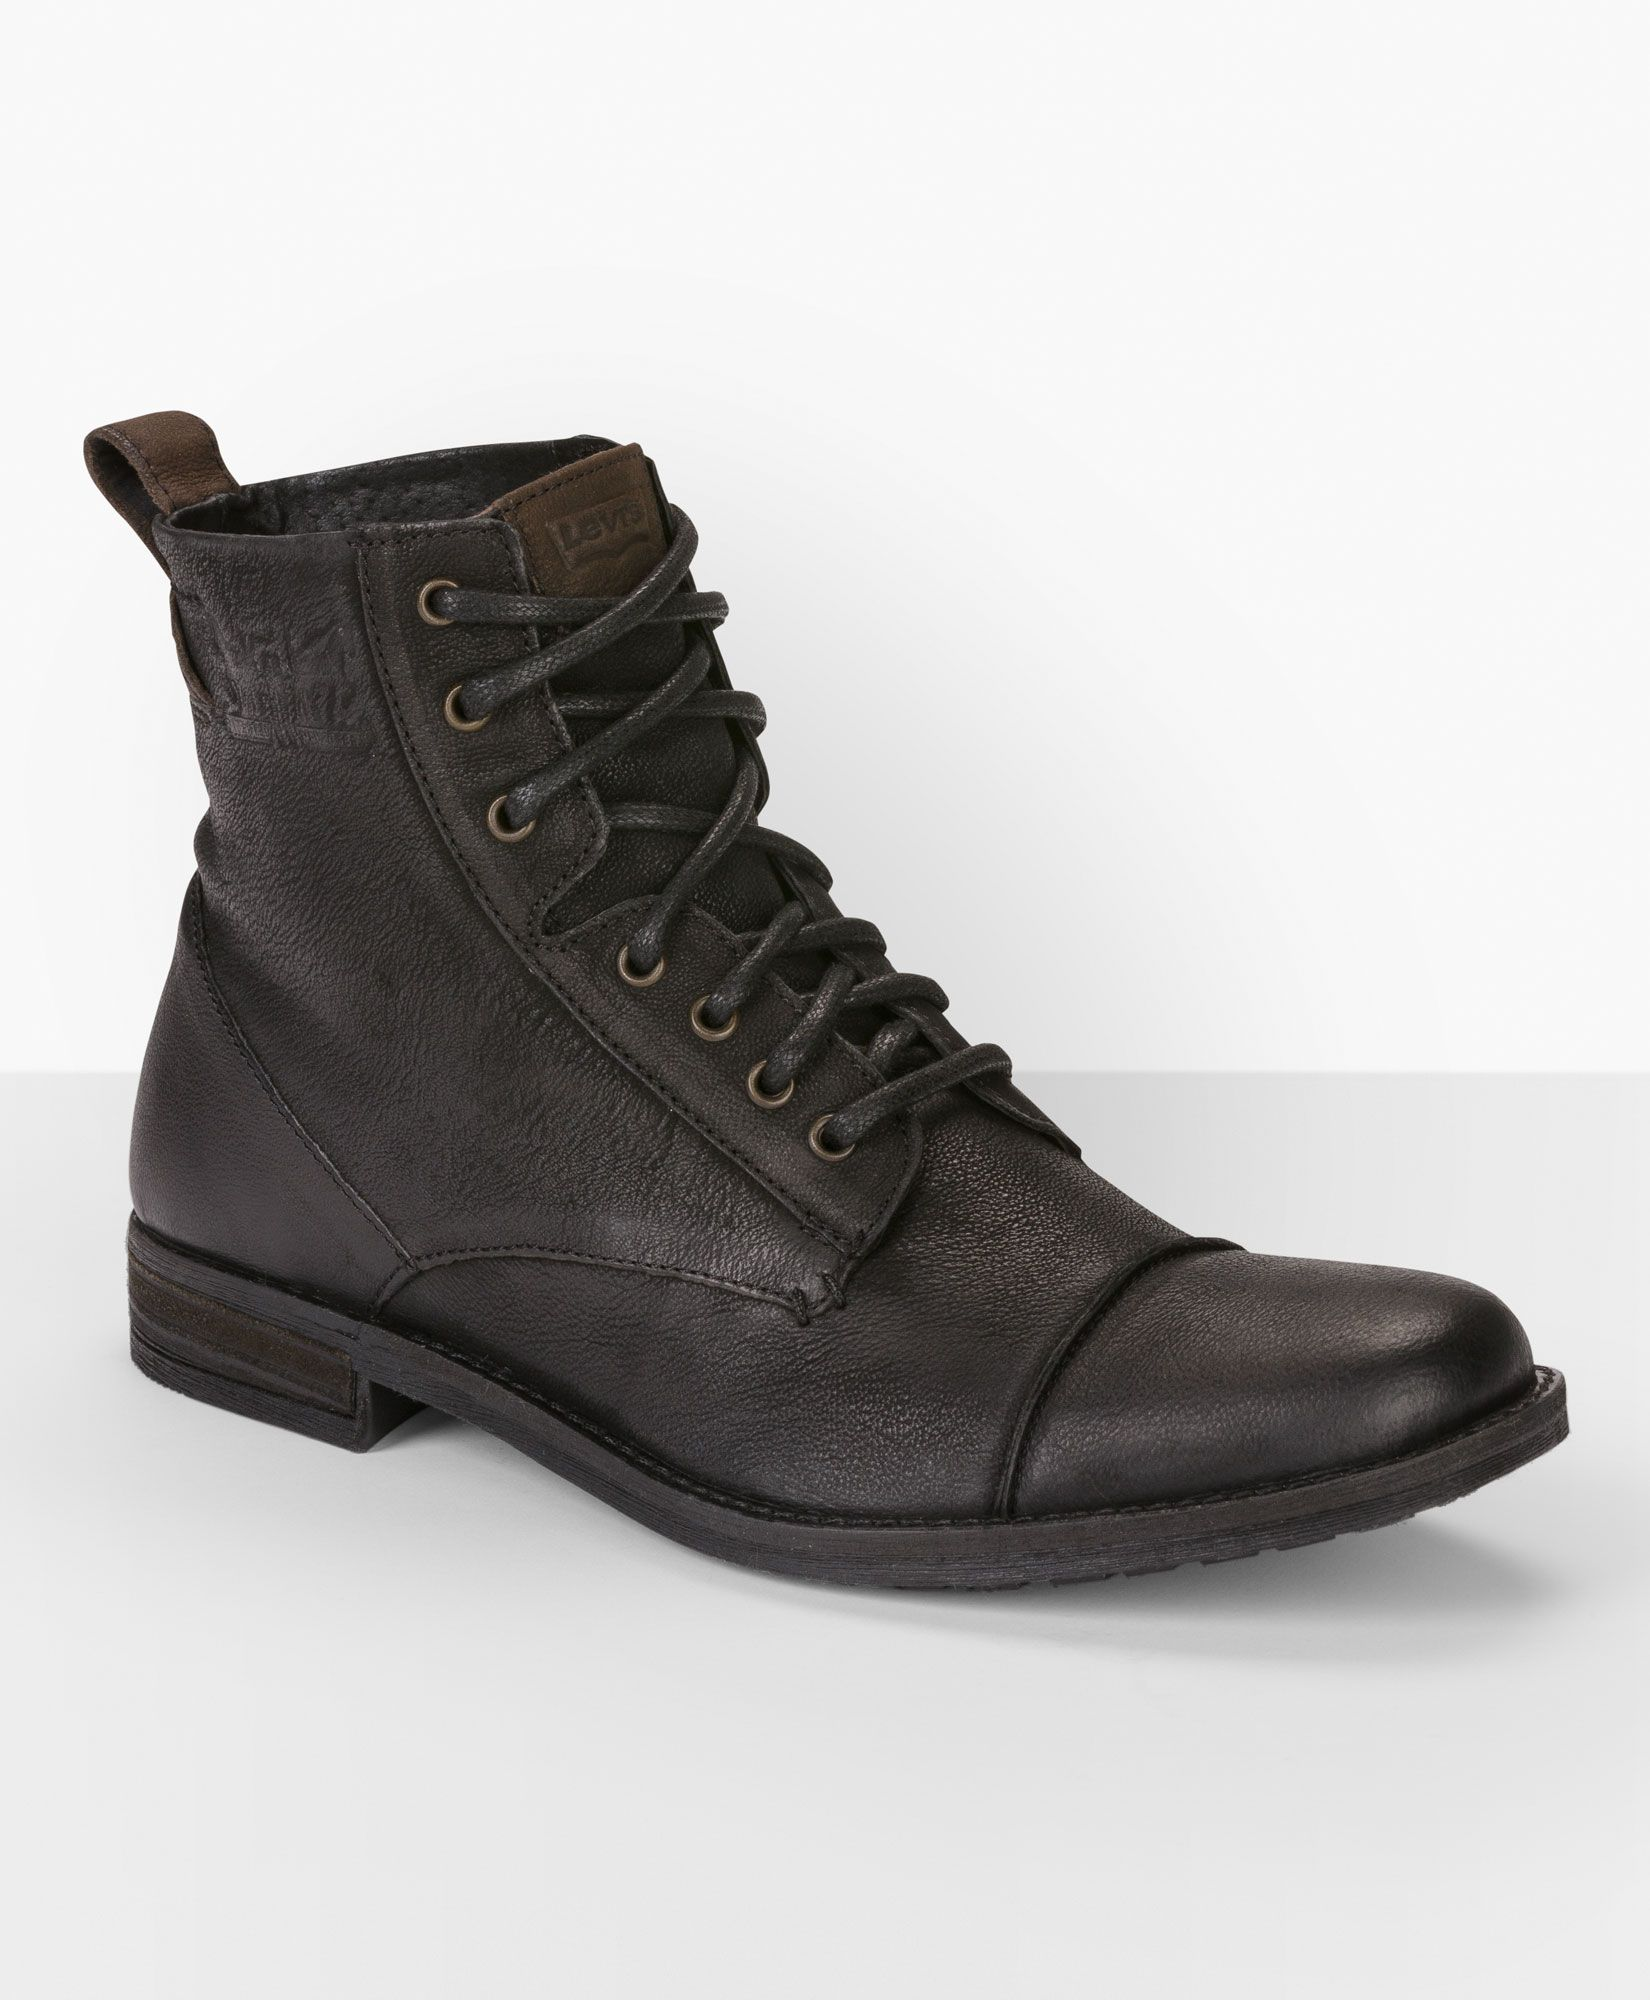 1496ee538b Levi's Lace Up Utility Boots $128 size 12 | Sean in 2019 | Shoes ...